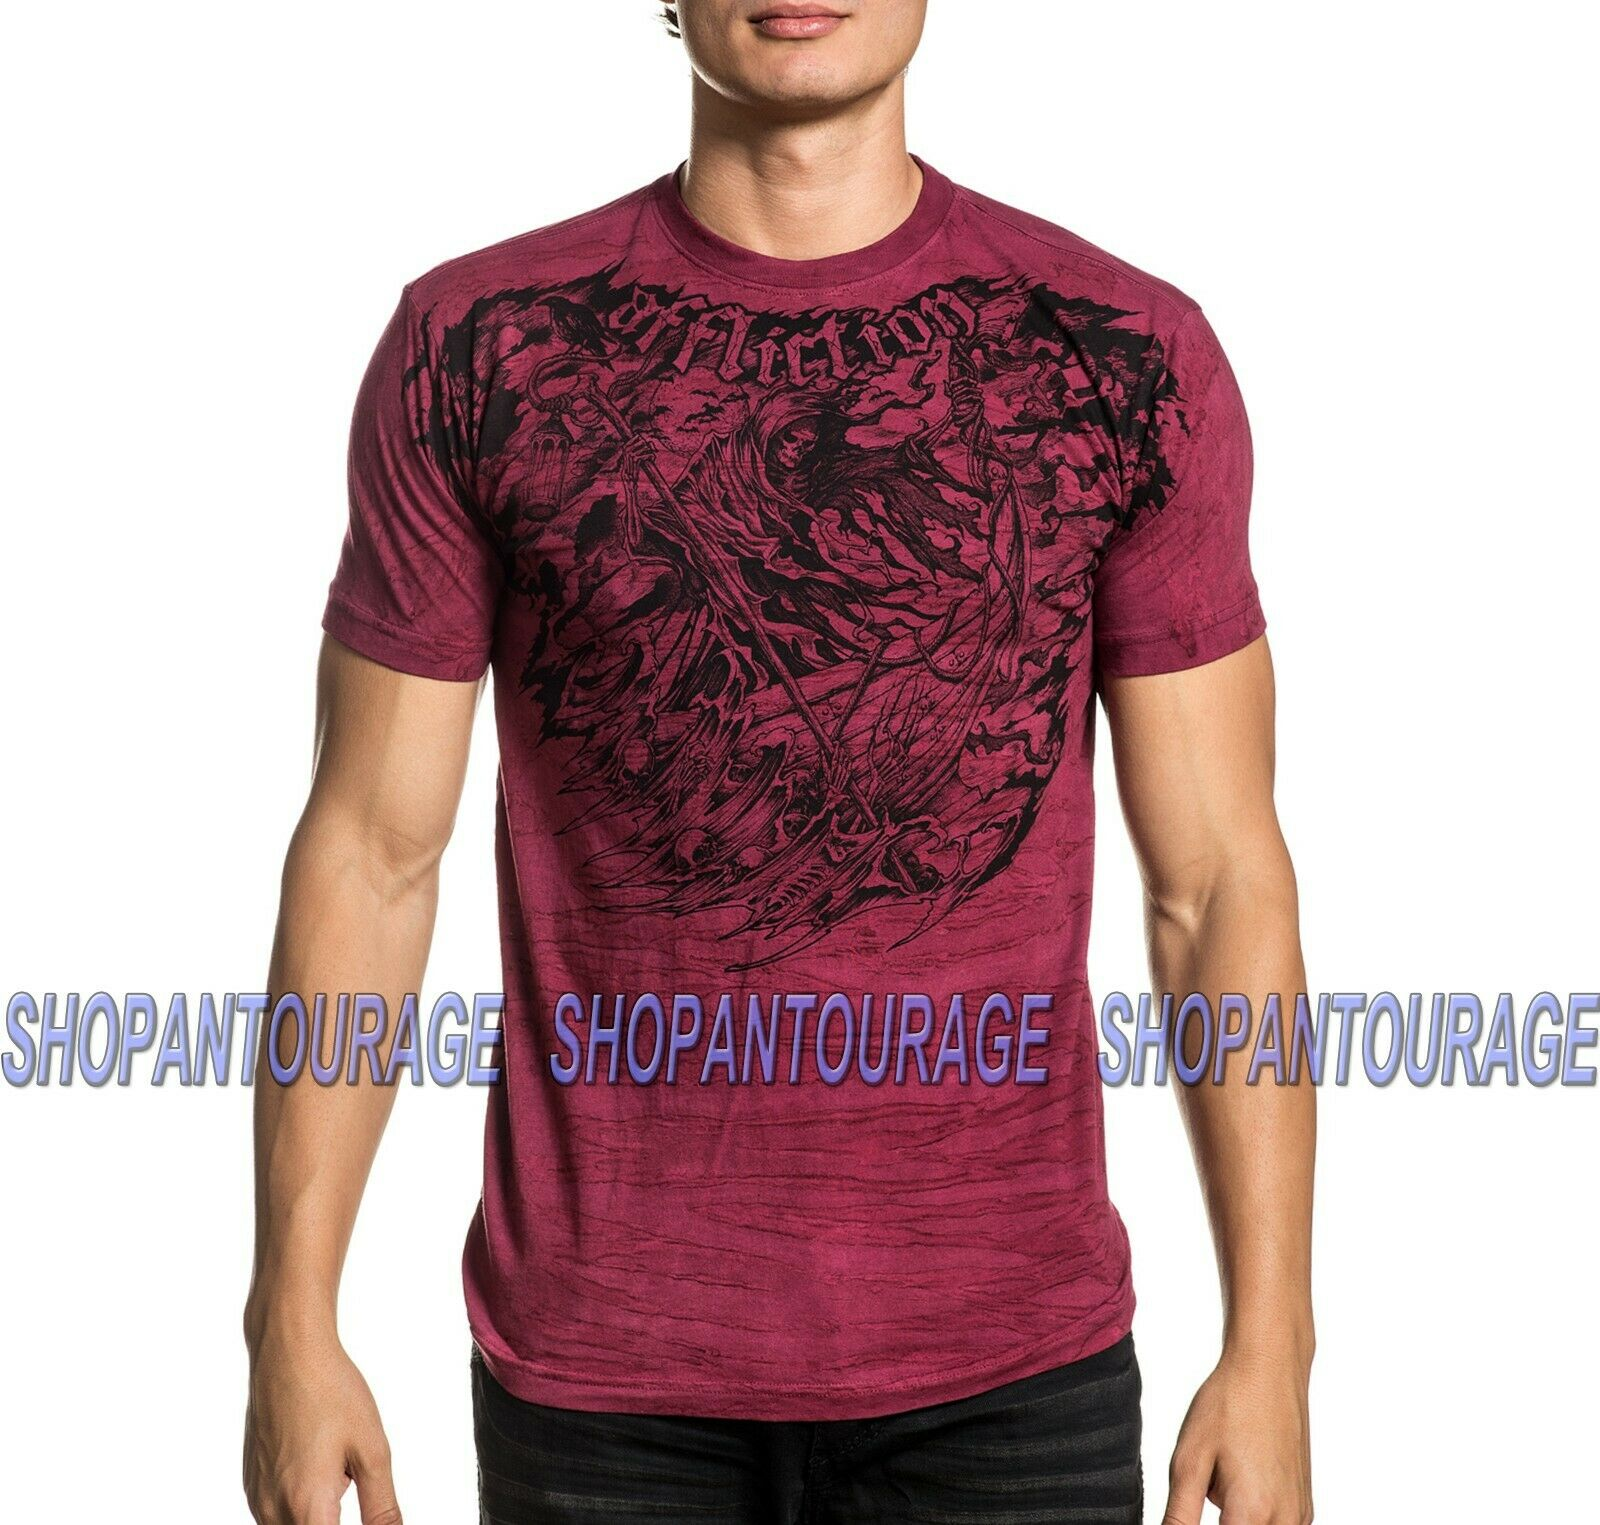 Affliction River Styx A20894 New Short Sleeve Fashion Graphic T-shirt For Men